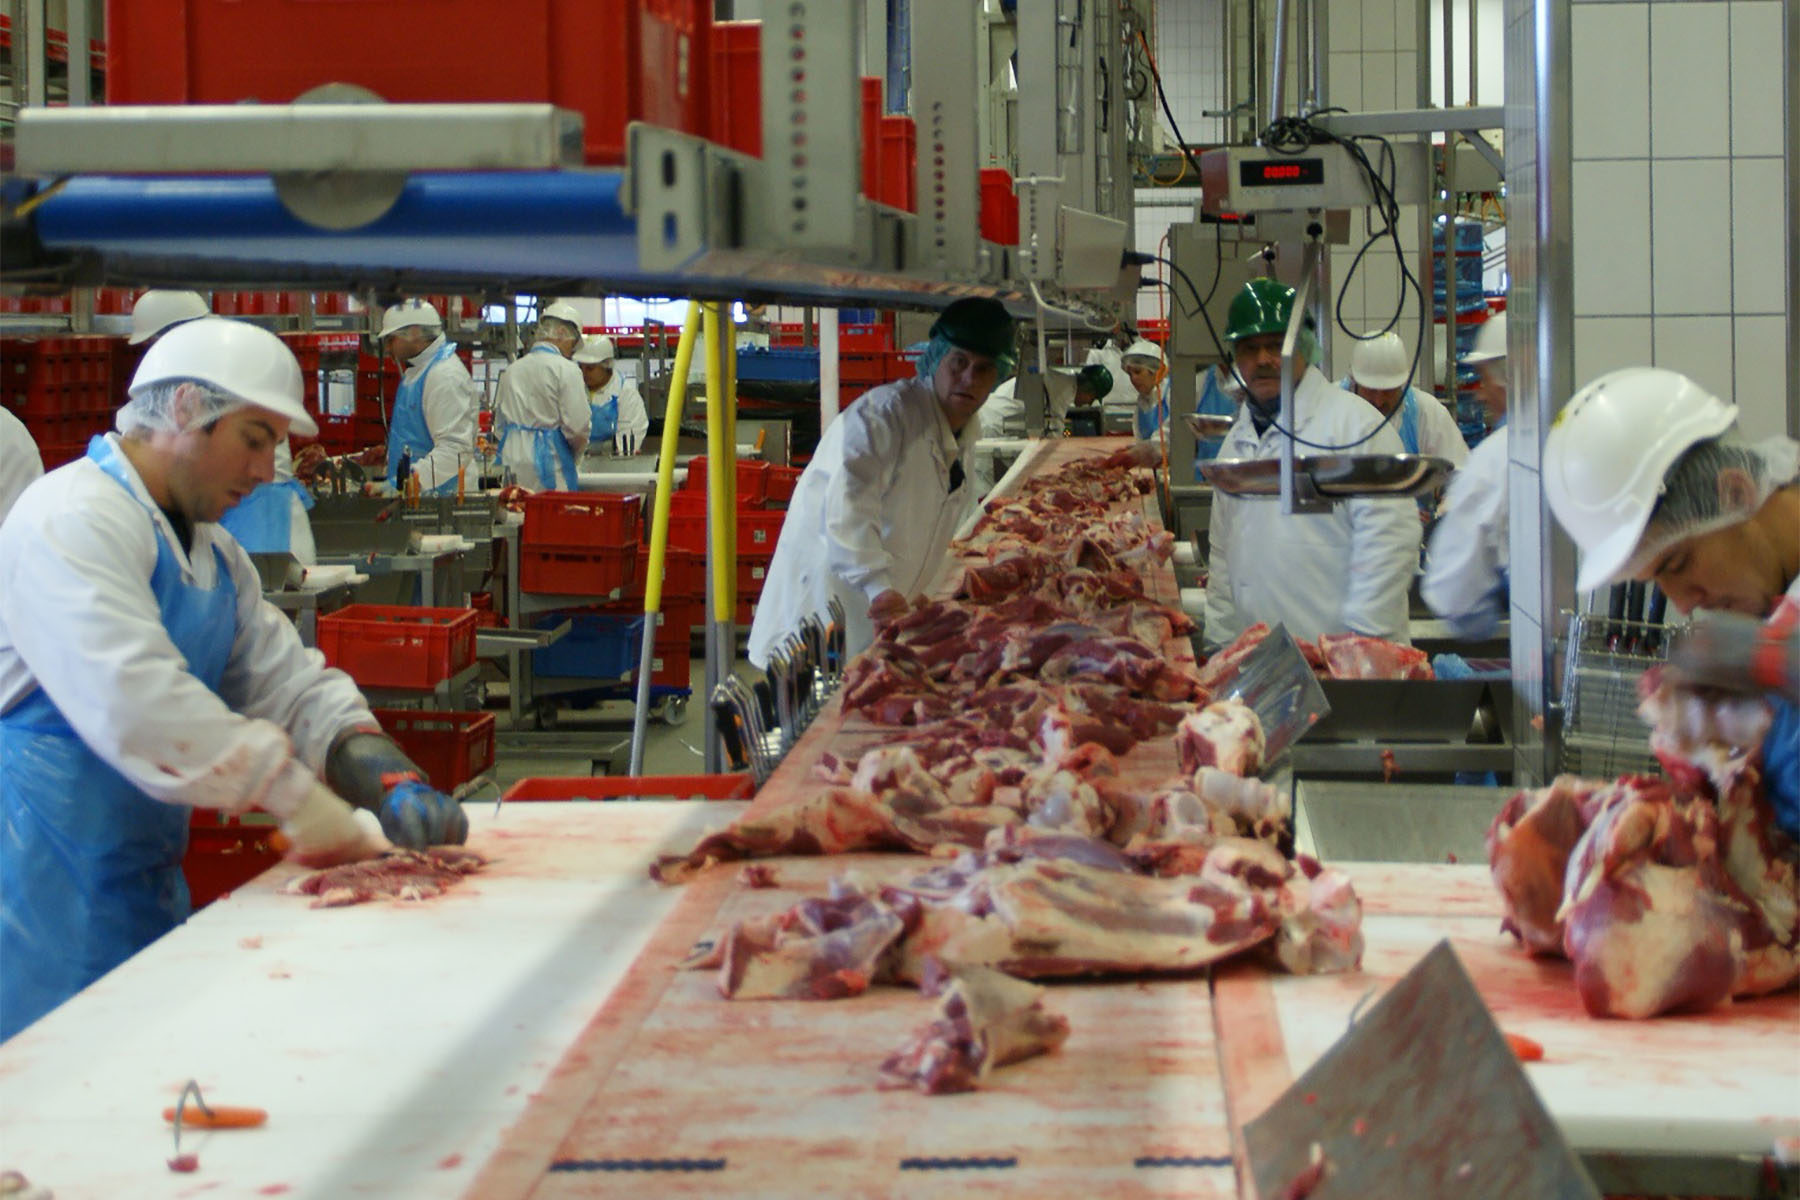 Over 20.5 million pounds of meat was recalled in the United States in 2018